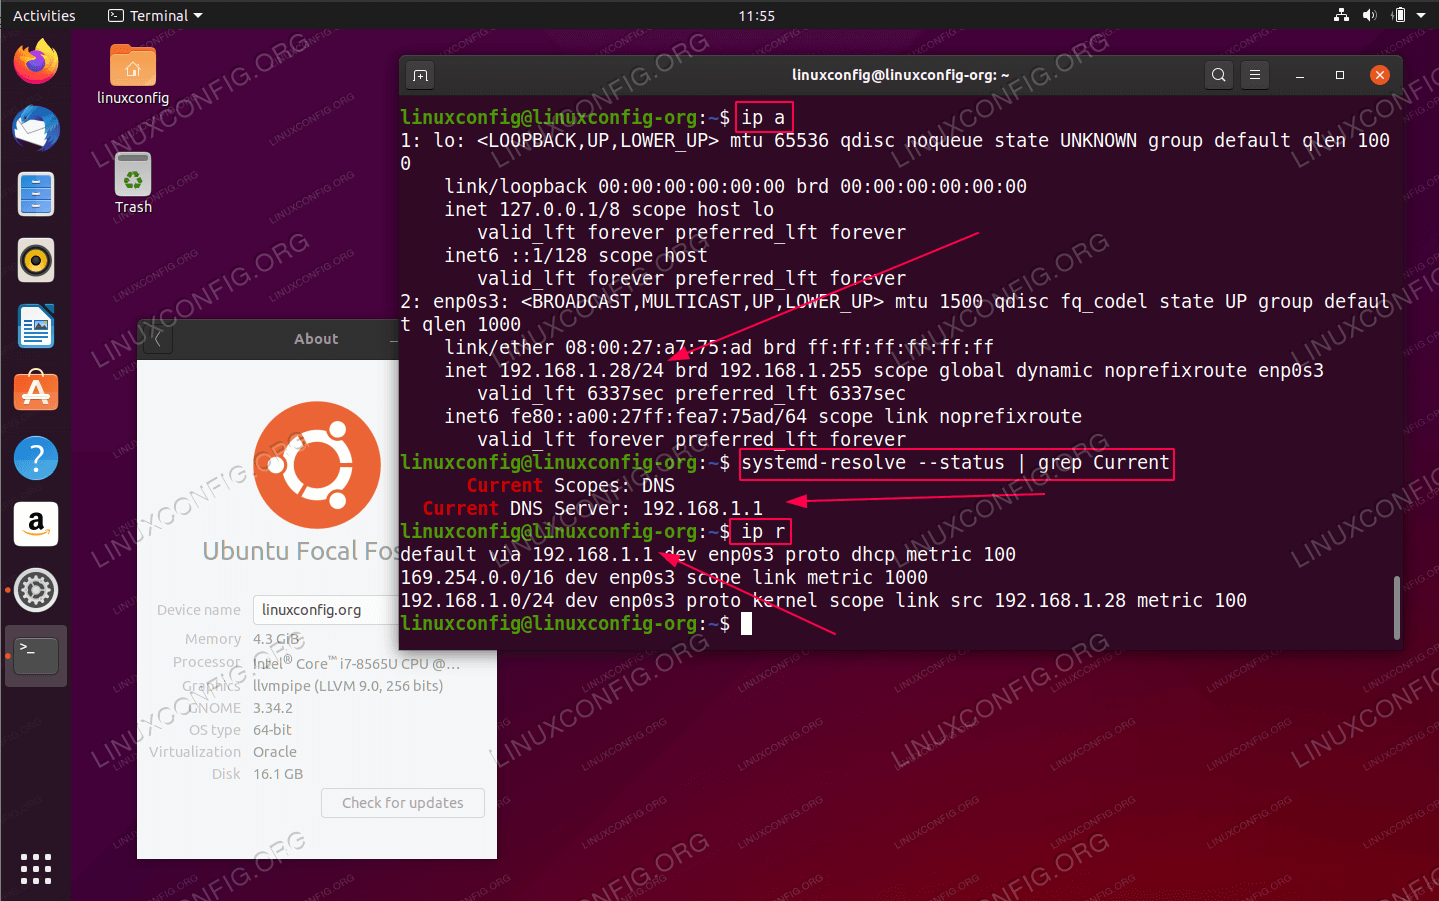 How to find my IP address on Ubuntu 20.04 Focal Fossa Linux -  LinuxConfig.org